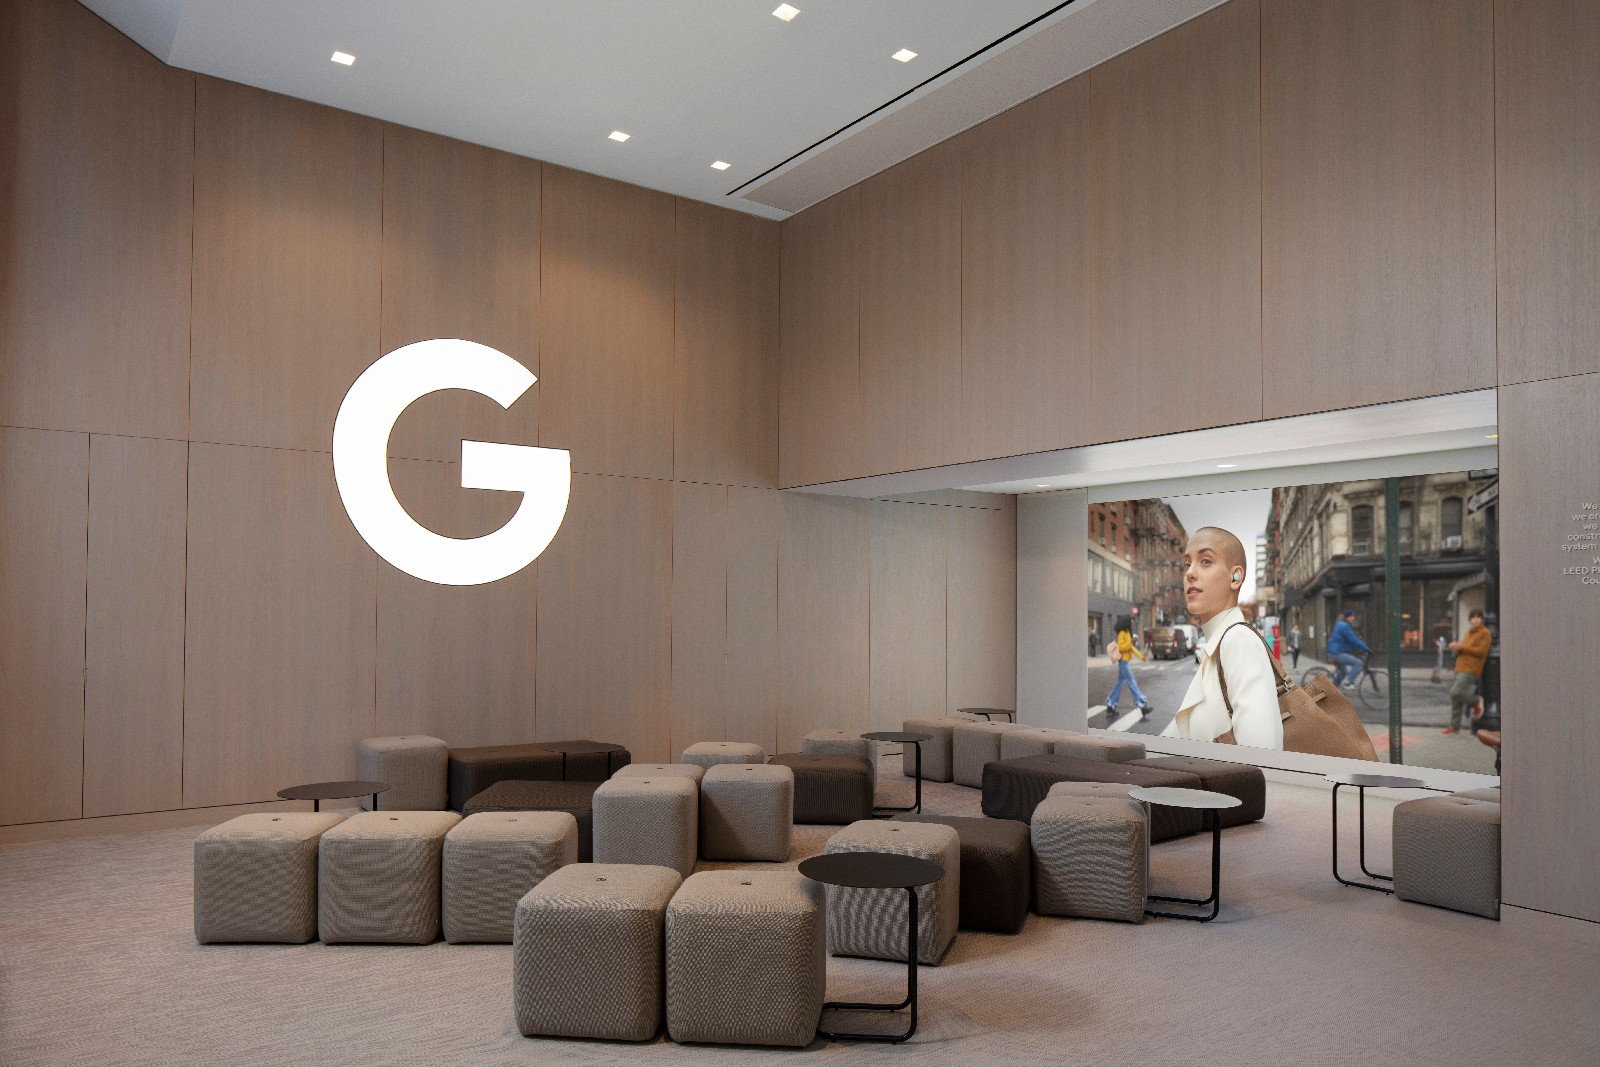 <p>Google Store Chelsea. The empty workshop area with ottomans and small tables.</p>